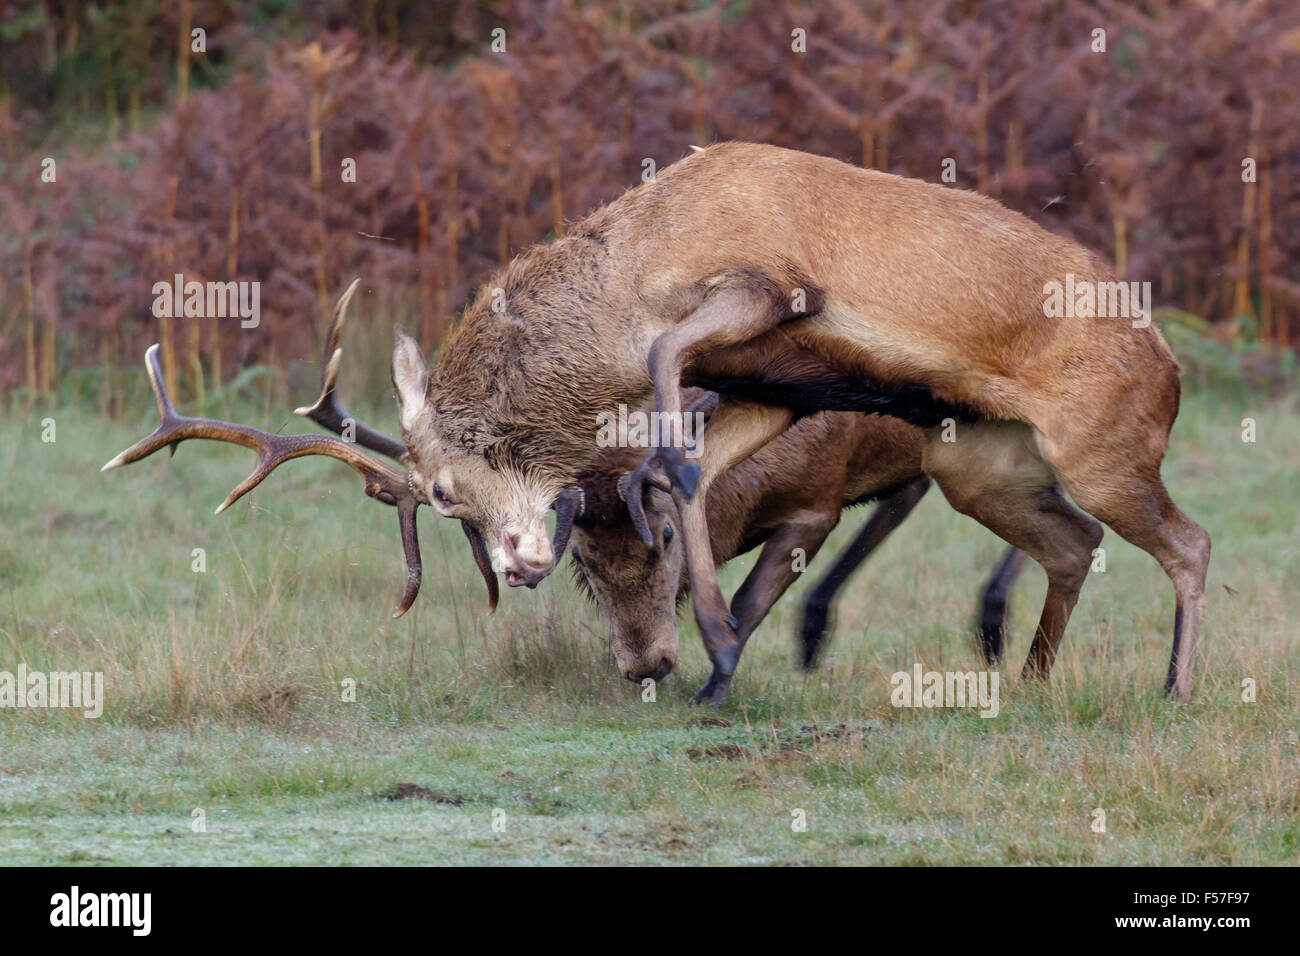 A pair of Red Deer rut stags (Cervus elaphus) fighting, dueling or sparring on a crisp morning. - Stock Image